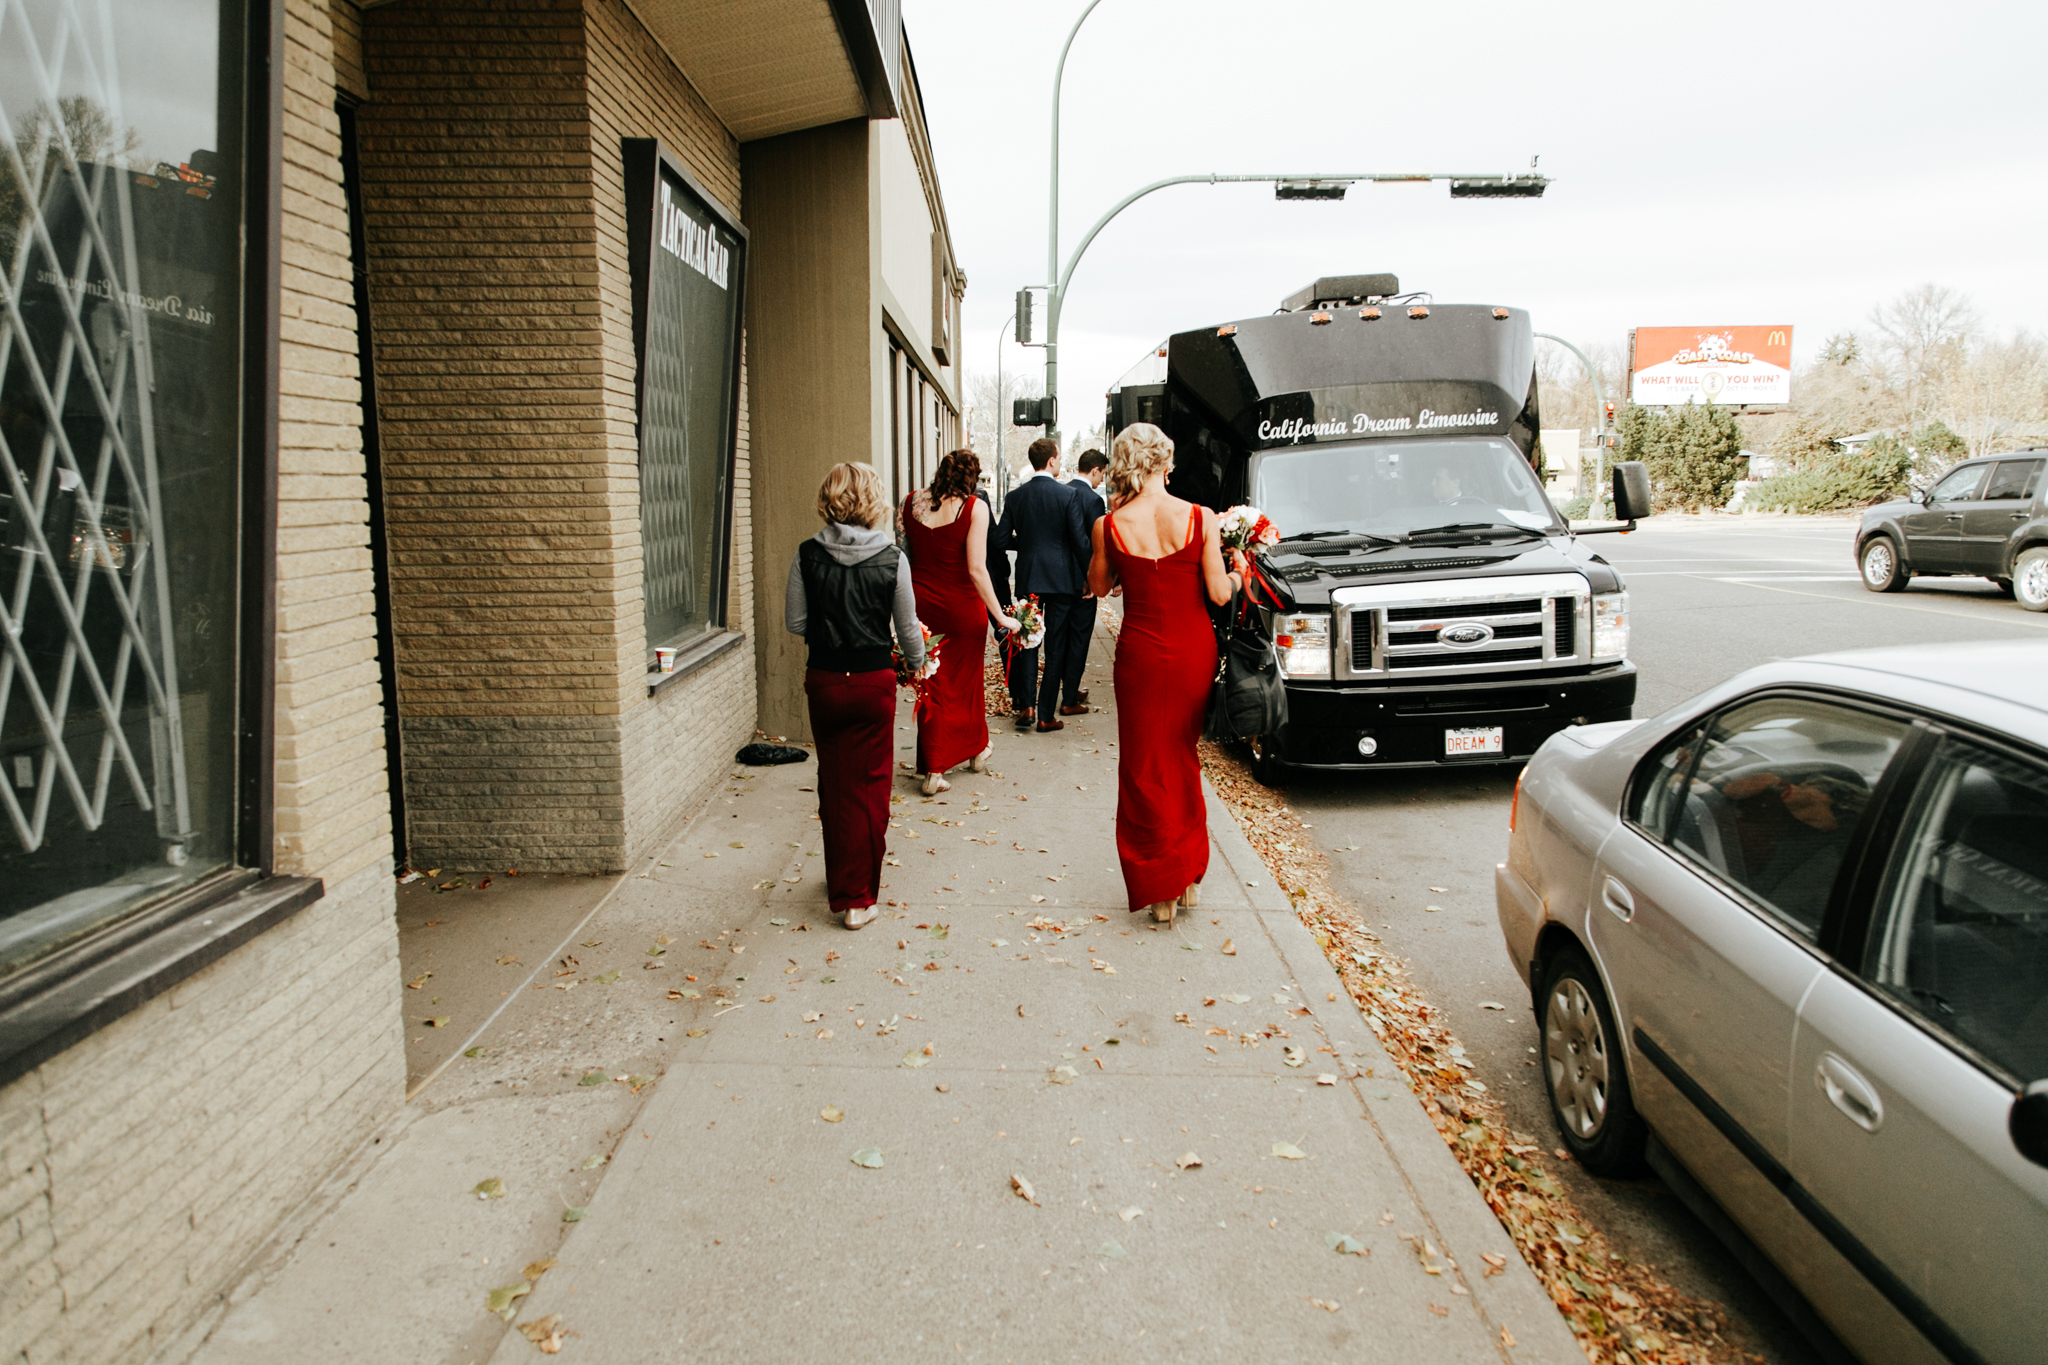 lethbridge-photographer-love-and-be-loved-photography-designed-to-dwell-wedding-katie-kelly-photo-image-picture-36.jpg